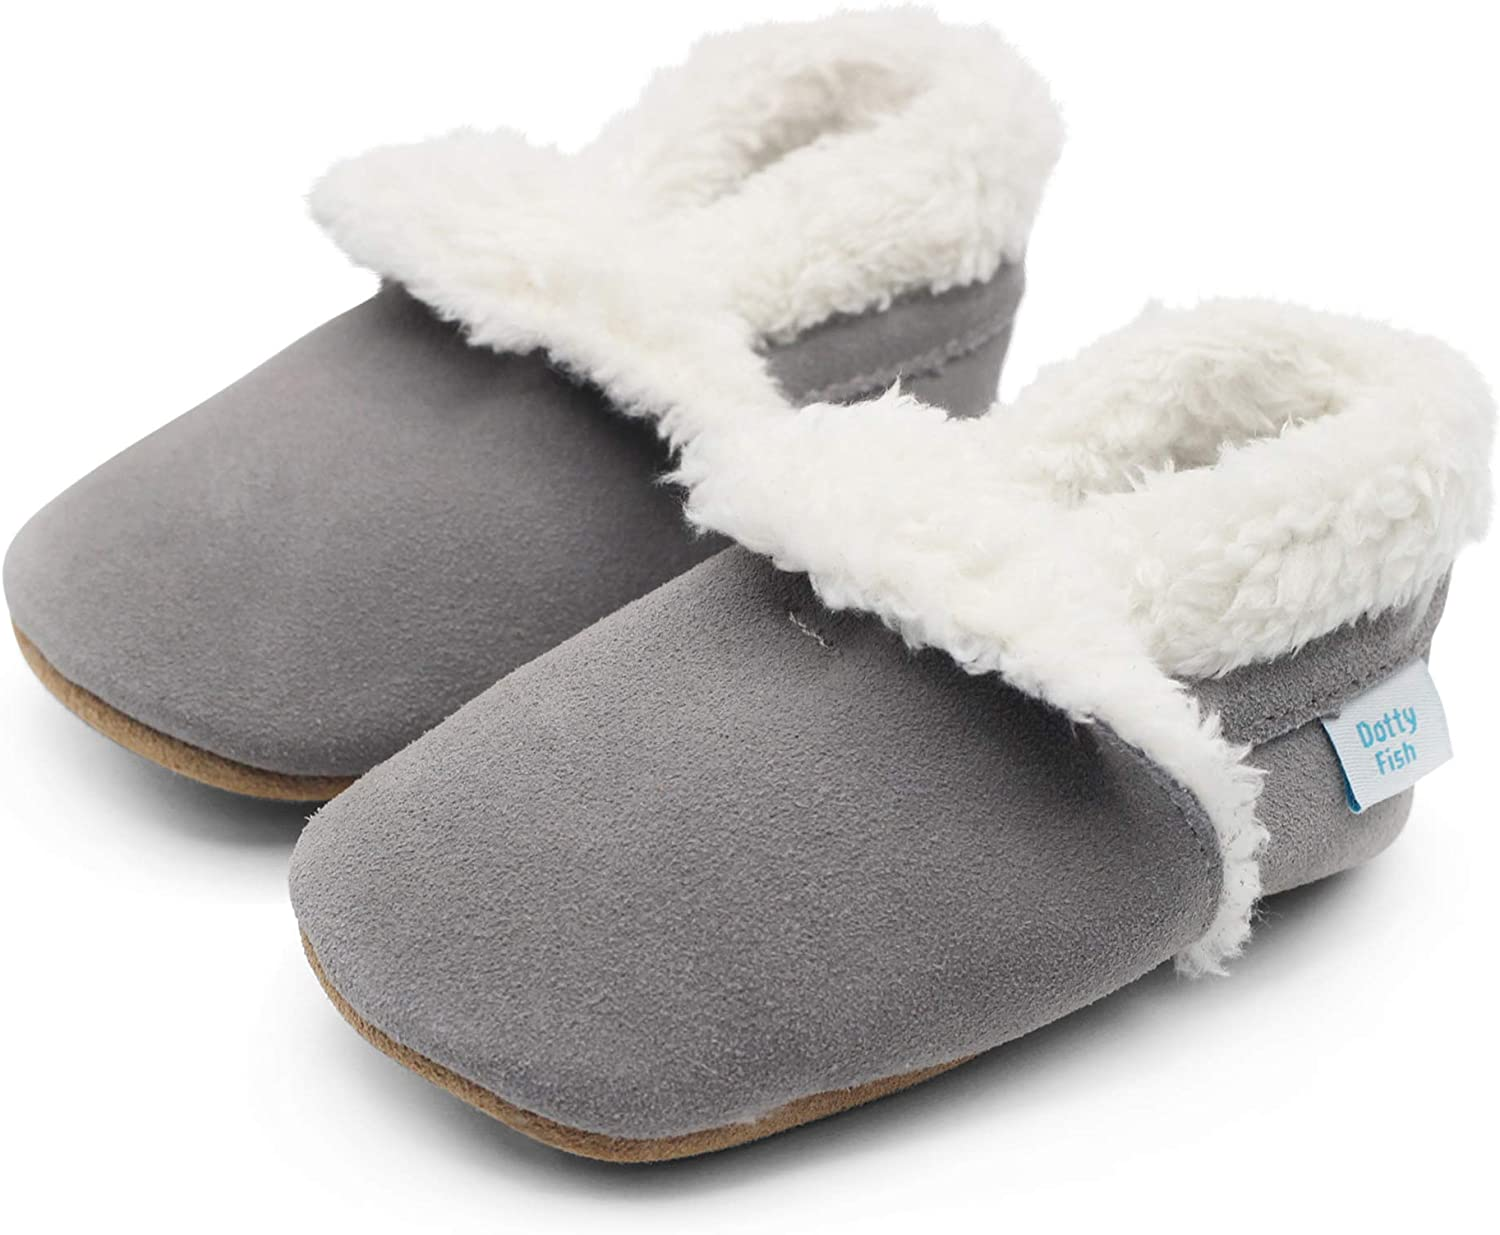 Boys Young Kids Non-Slip Soft Sole Warm Fleece Lined Girls. Dotty Fish Suede Baby Slippers Infant Toddler Shoes 0-6 Months to 5-6 Years